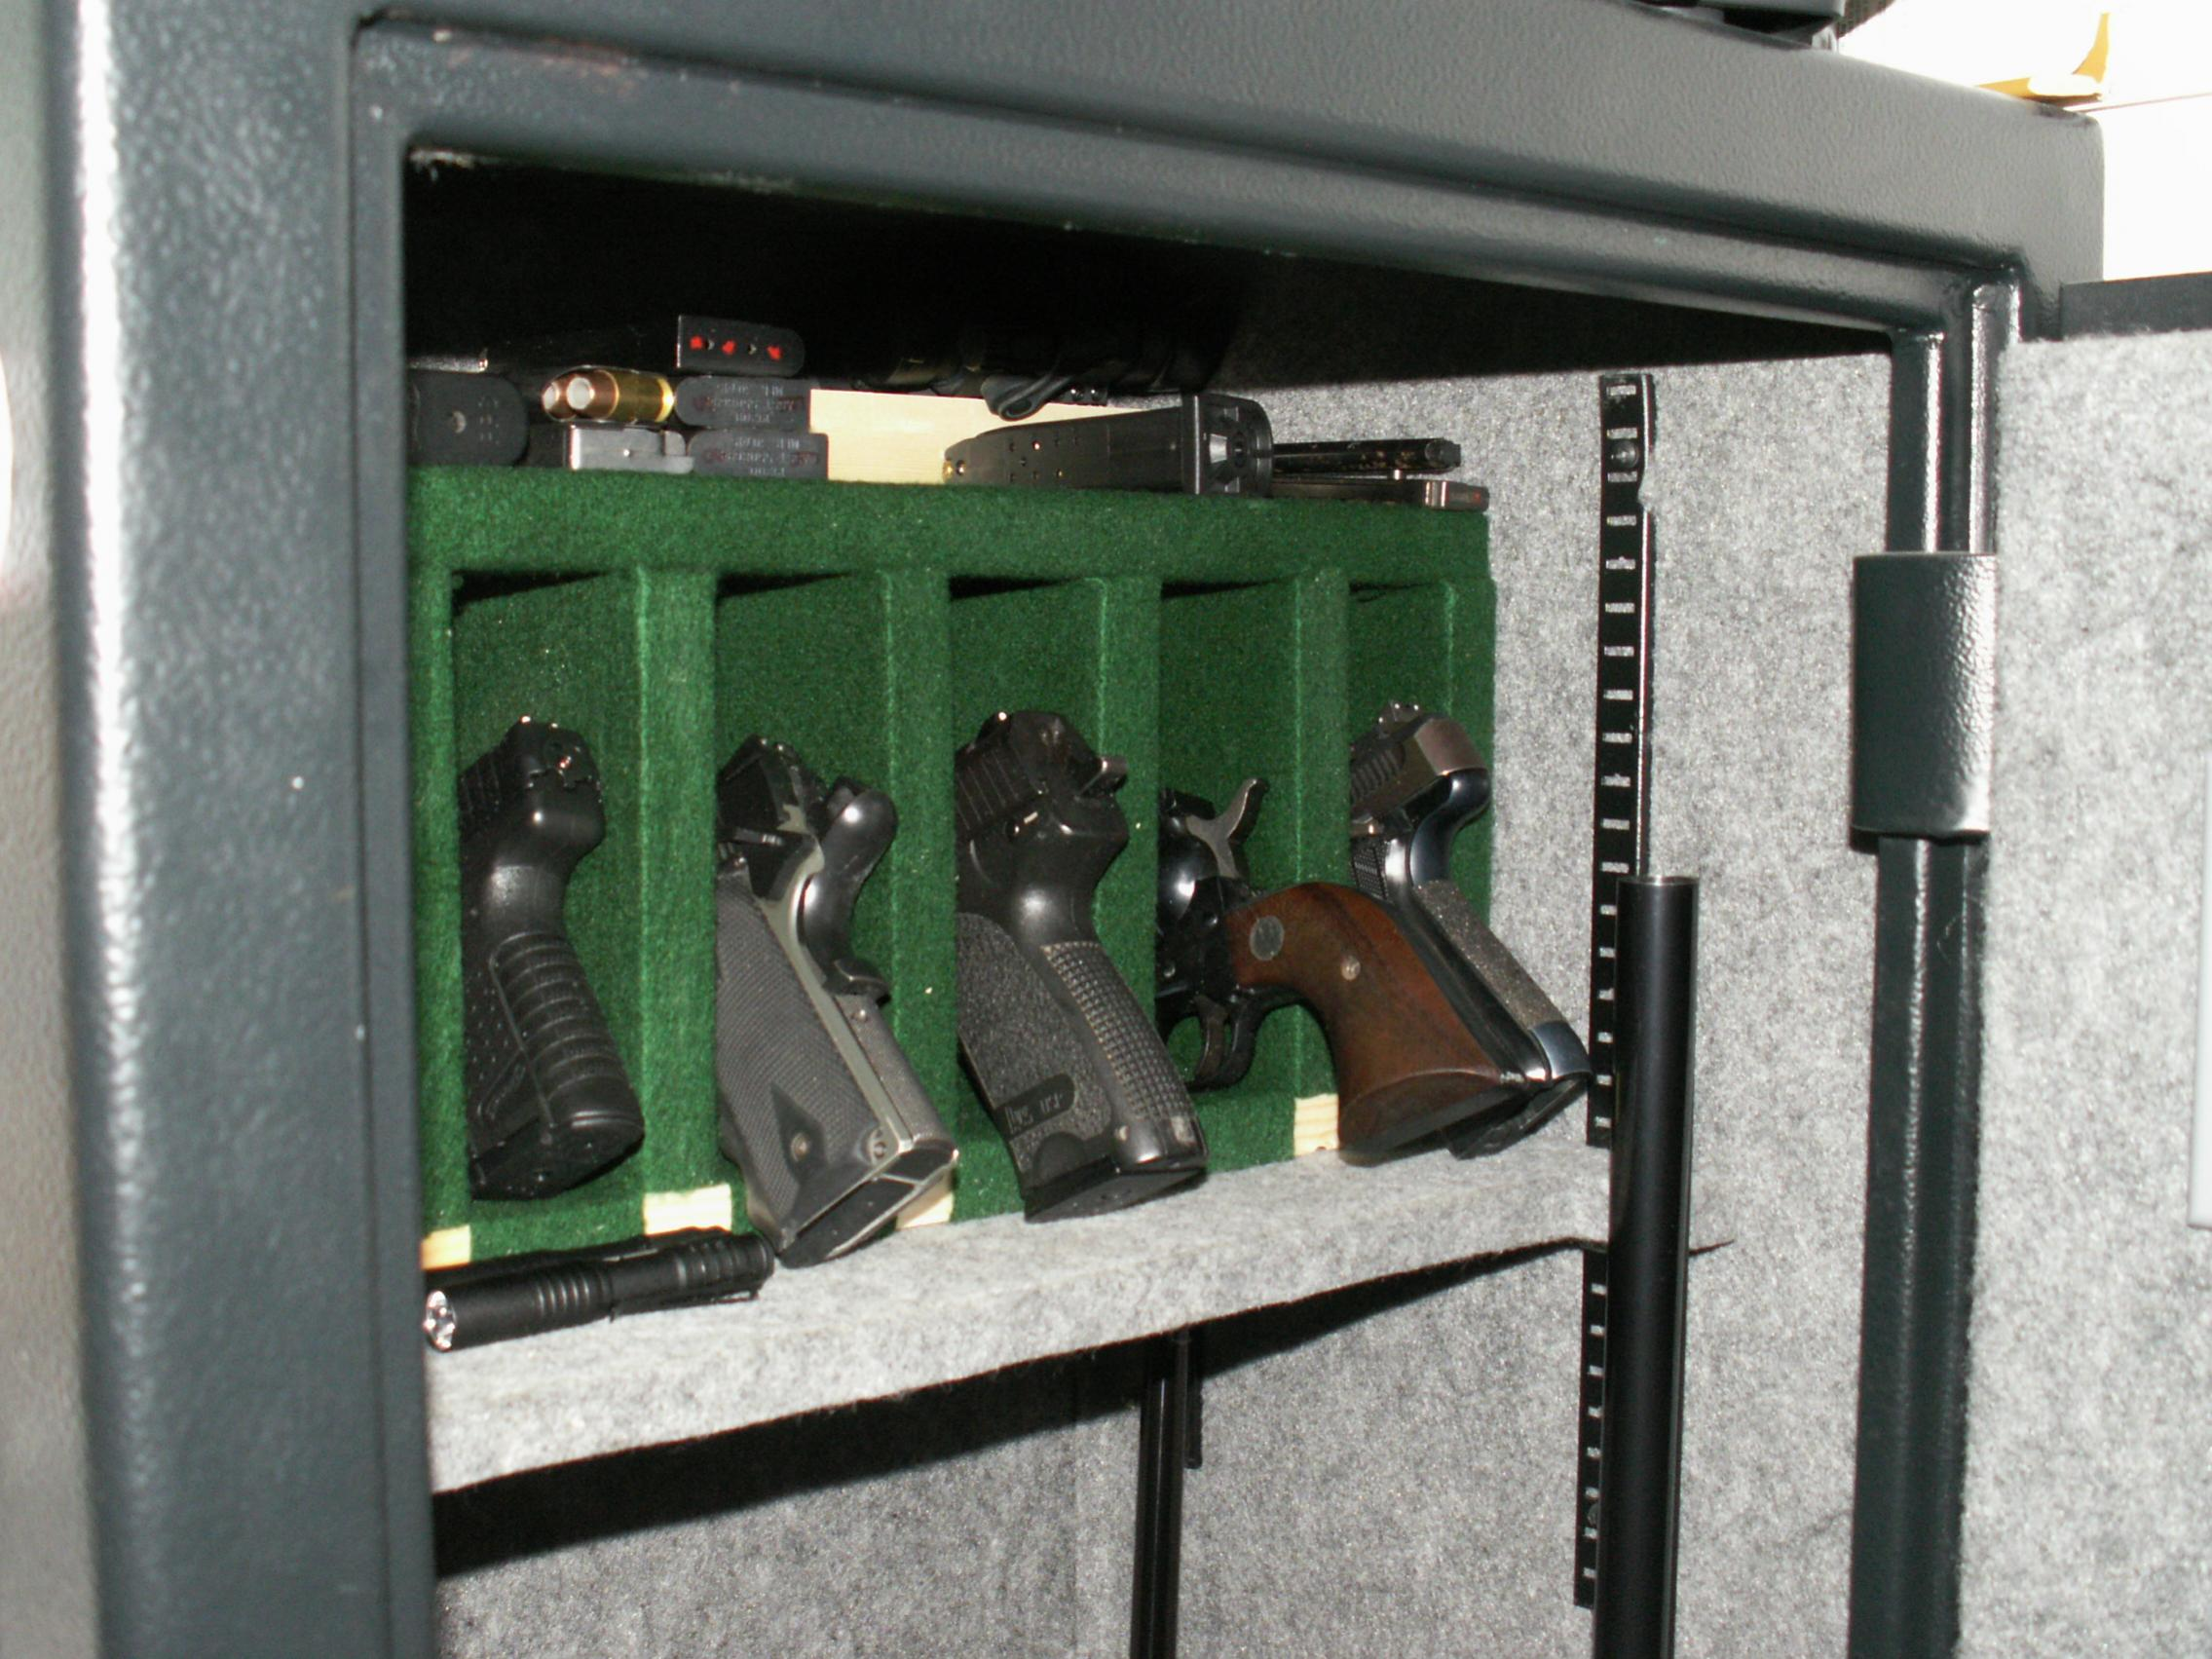 New safe mod-safe-asorted-004.jpg